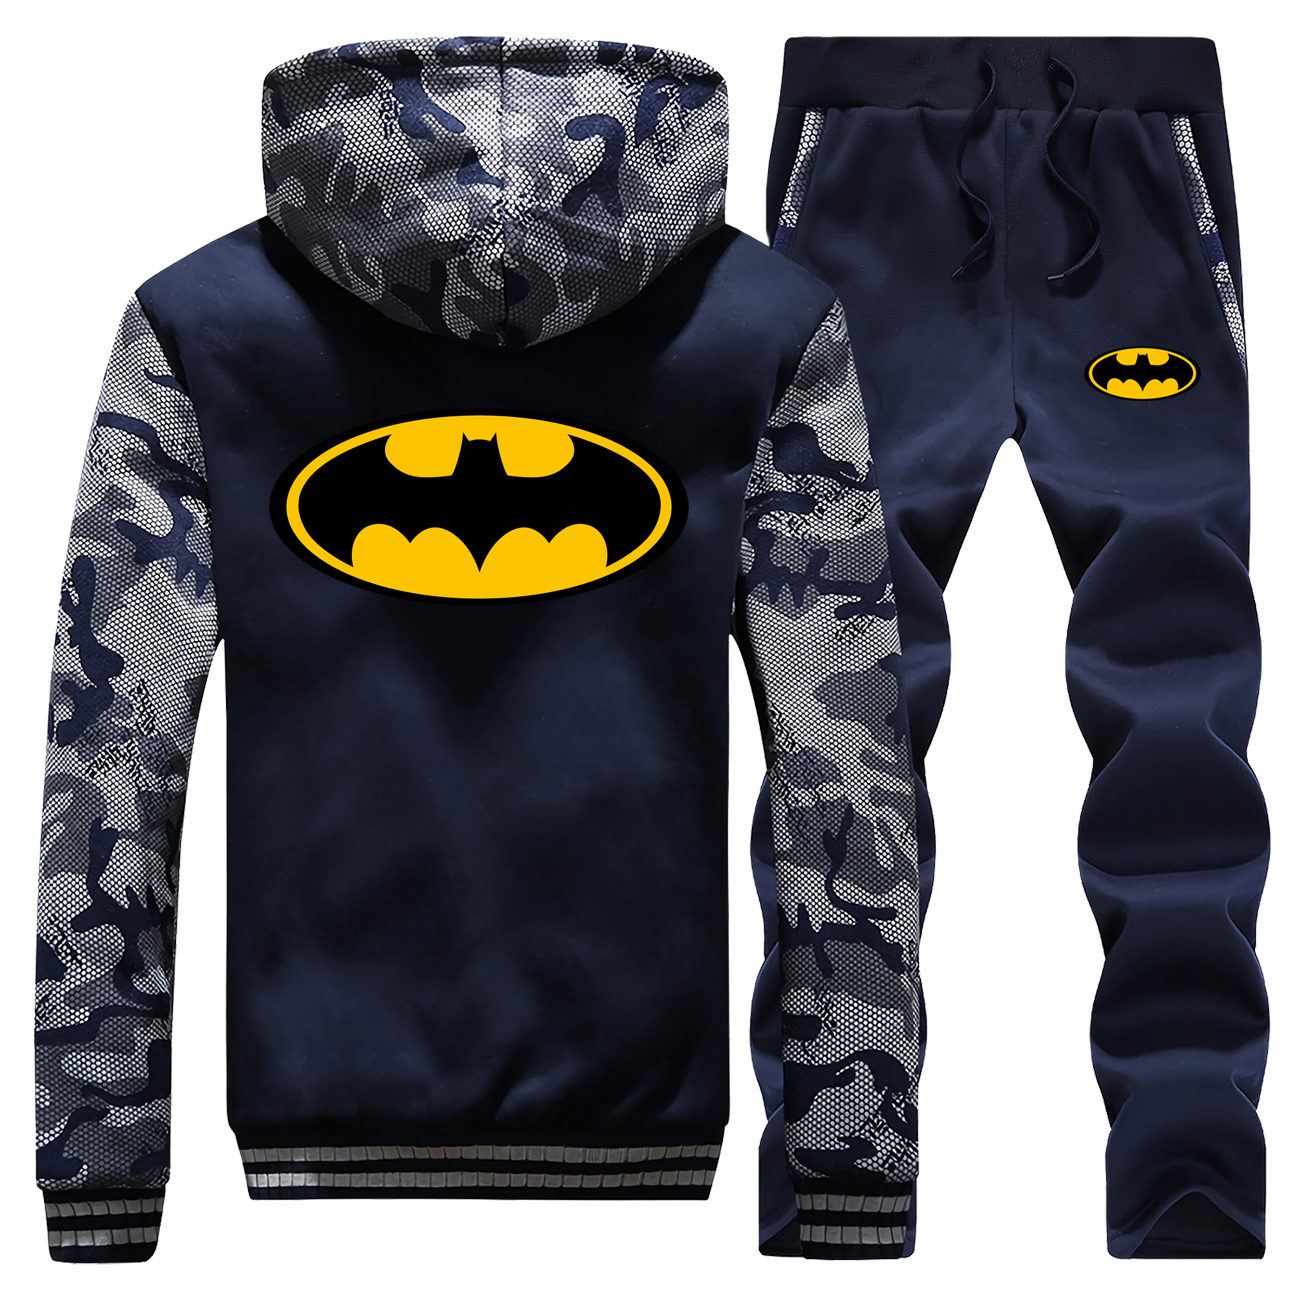 Winter Hot Sale Batman Hoodies Camouflage Raglan Mens Coat Thick Superhero Fashion Jackets Zipper Suit Hooded+Pants 2 Piece Set